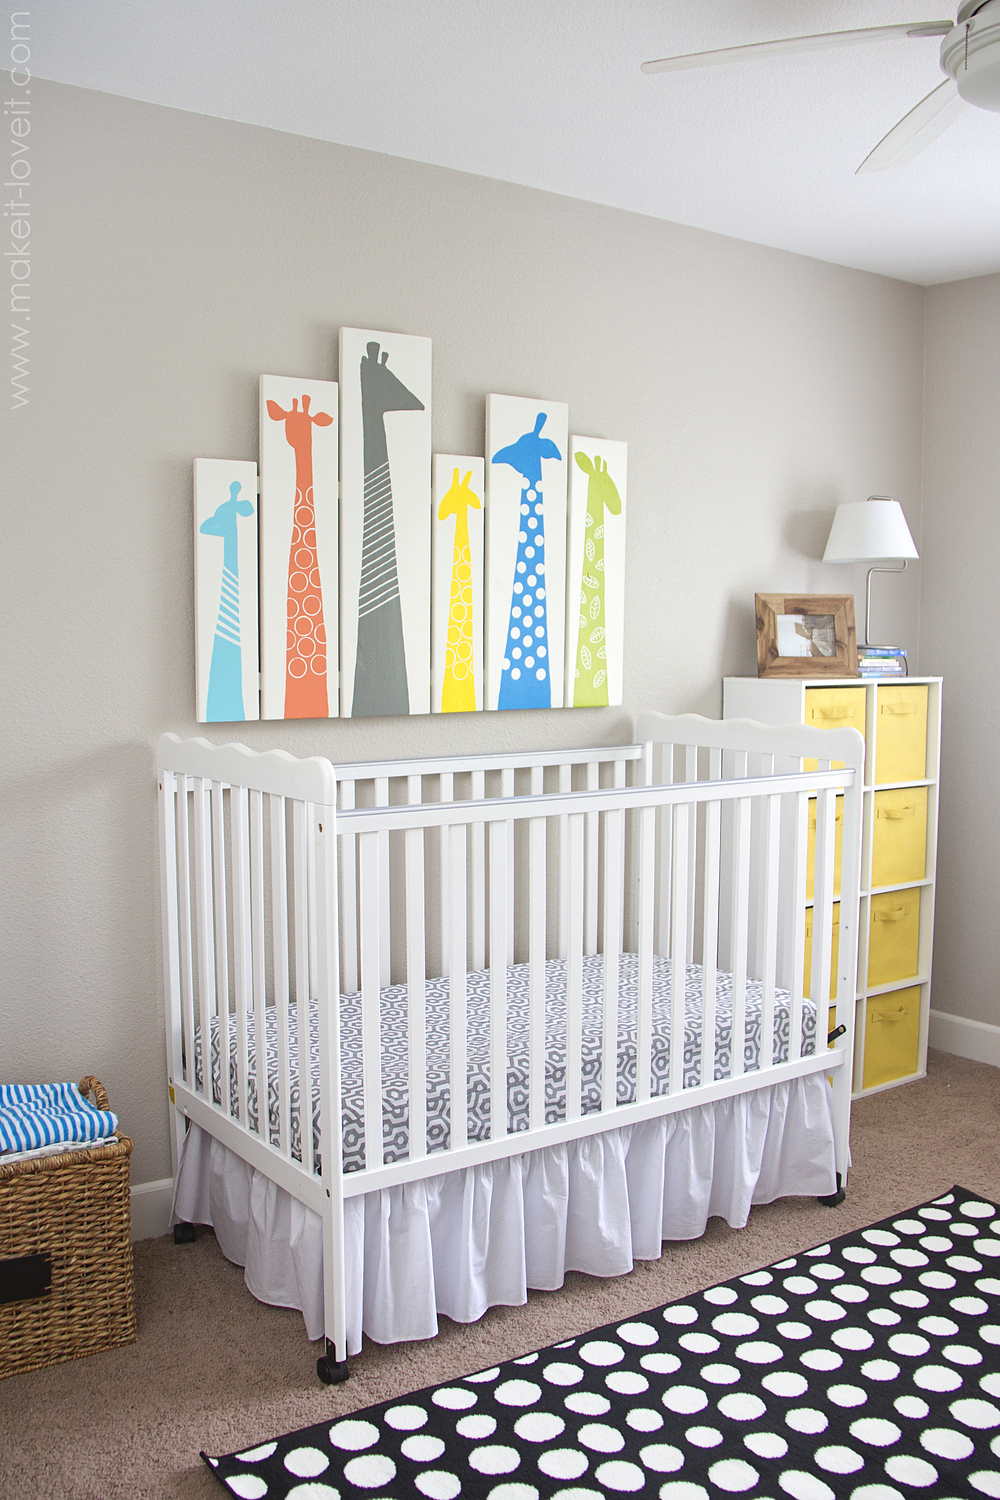 Image of: Giraffe Nursery Diy